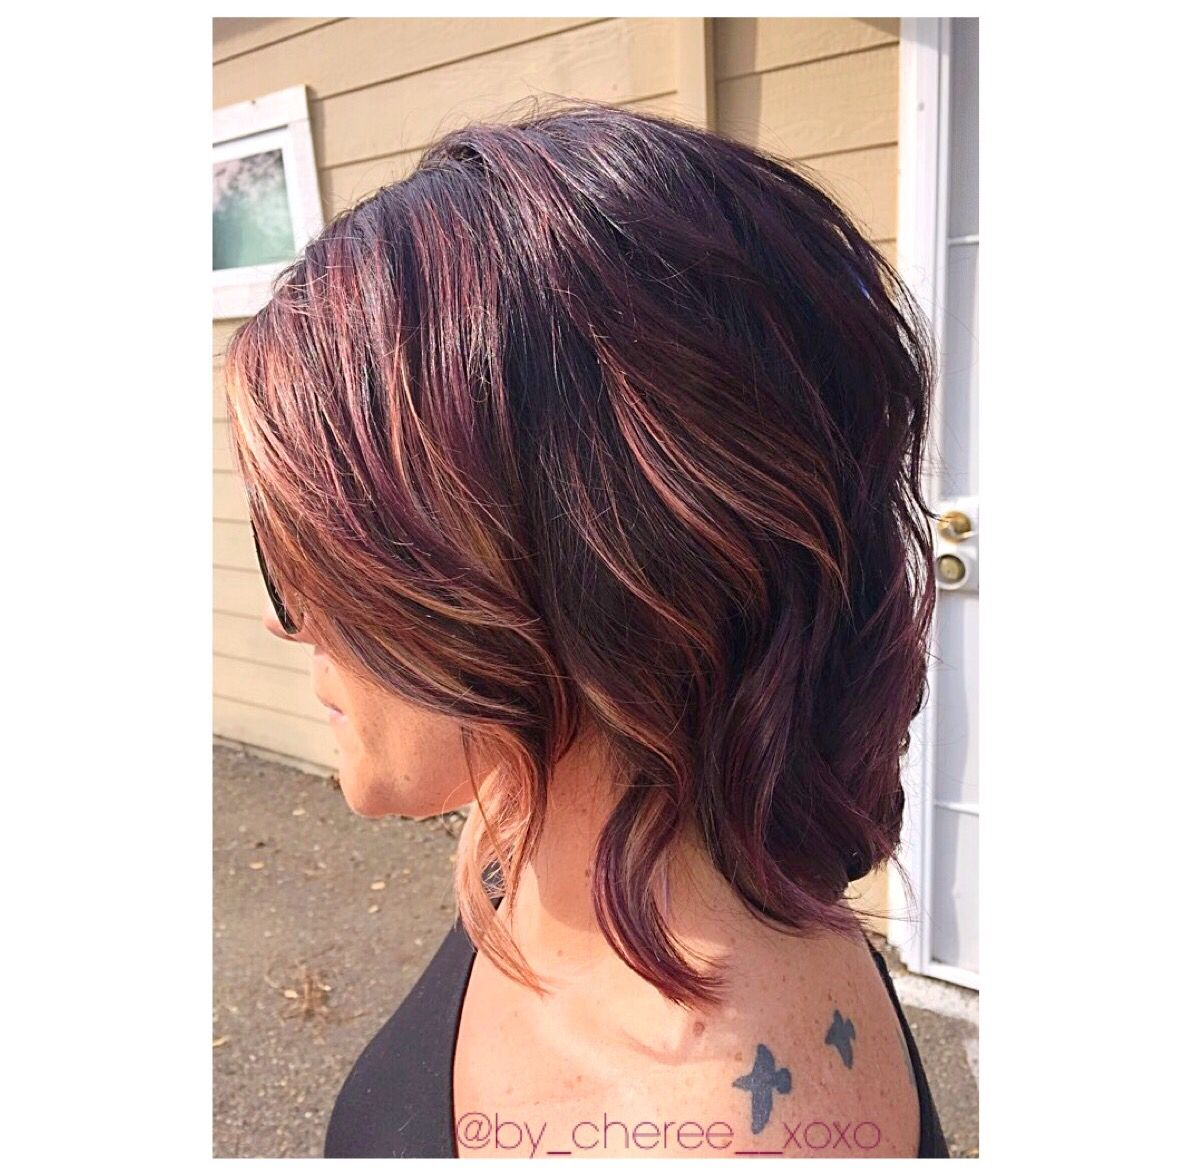 Merlot hair color - Merlot Hair Color With Highlights I Created Using Joico 4vr With 10vol And Matrix V